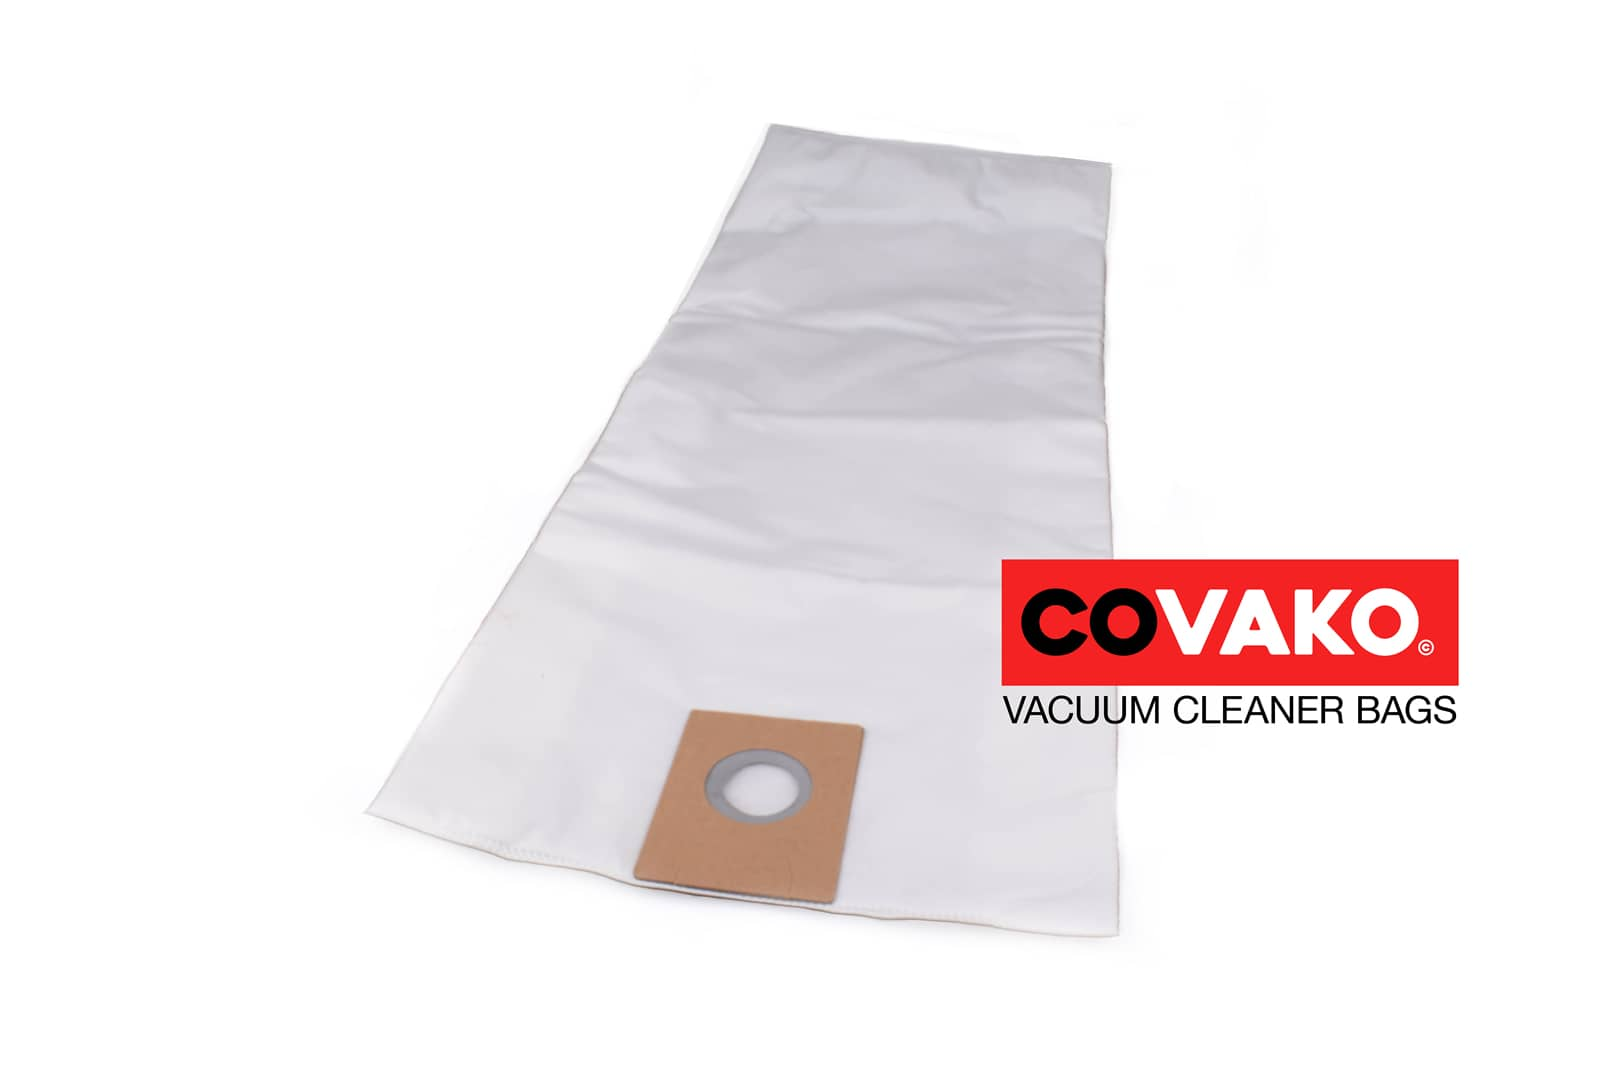 I-vac CA 80 / Synthesis - I-vac vacuum cleaner bags